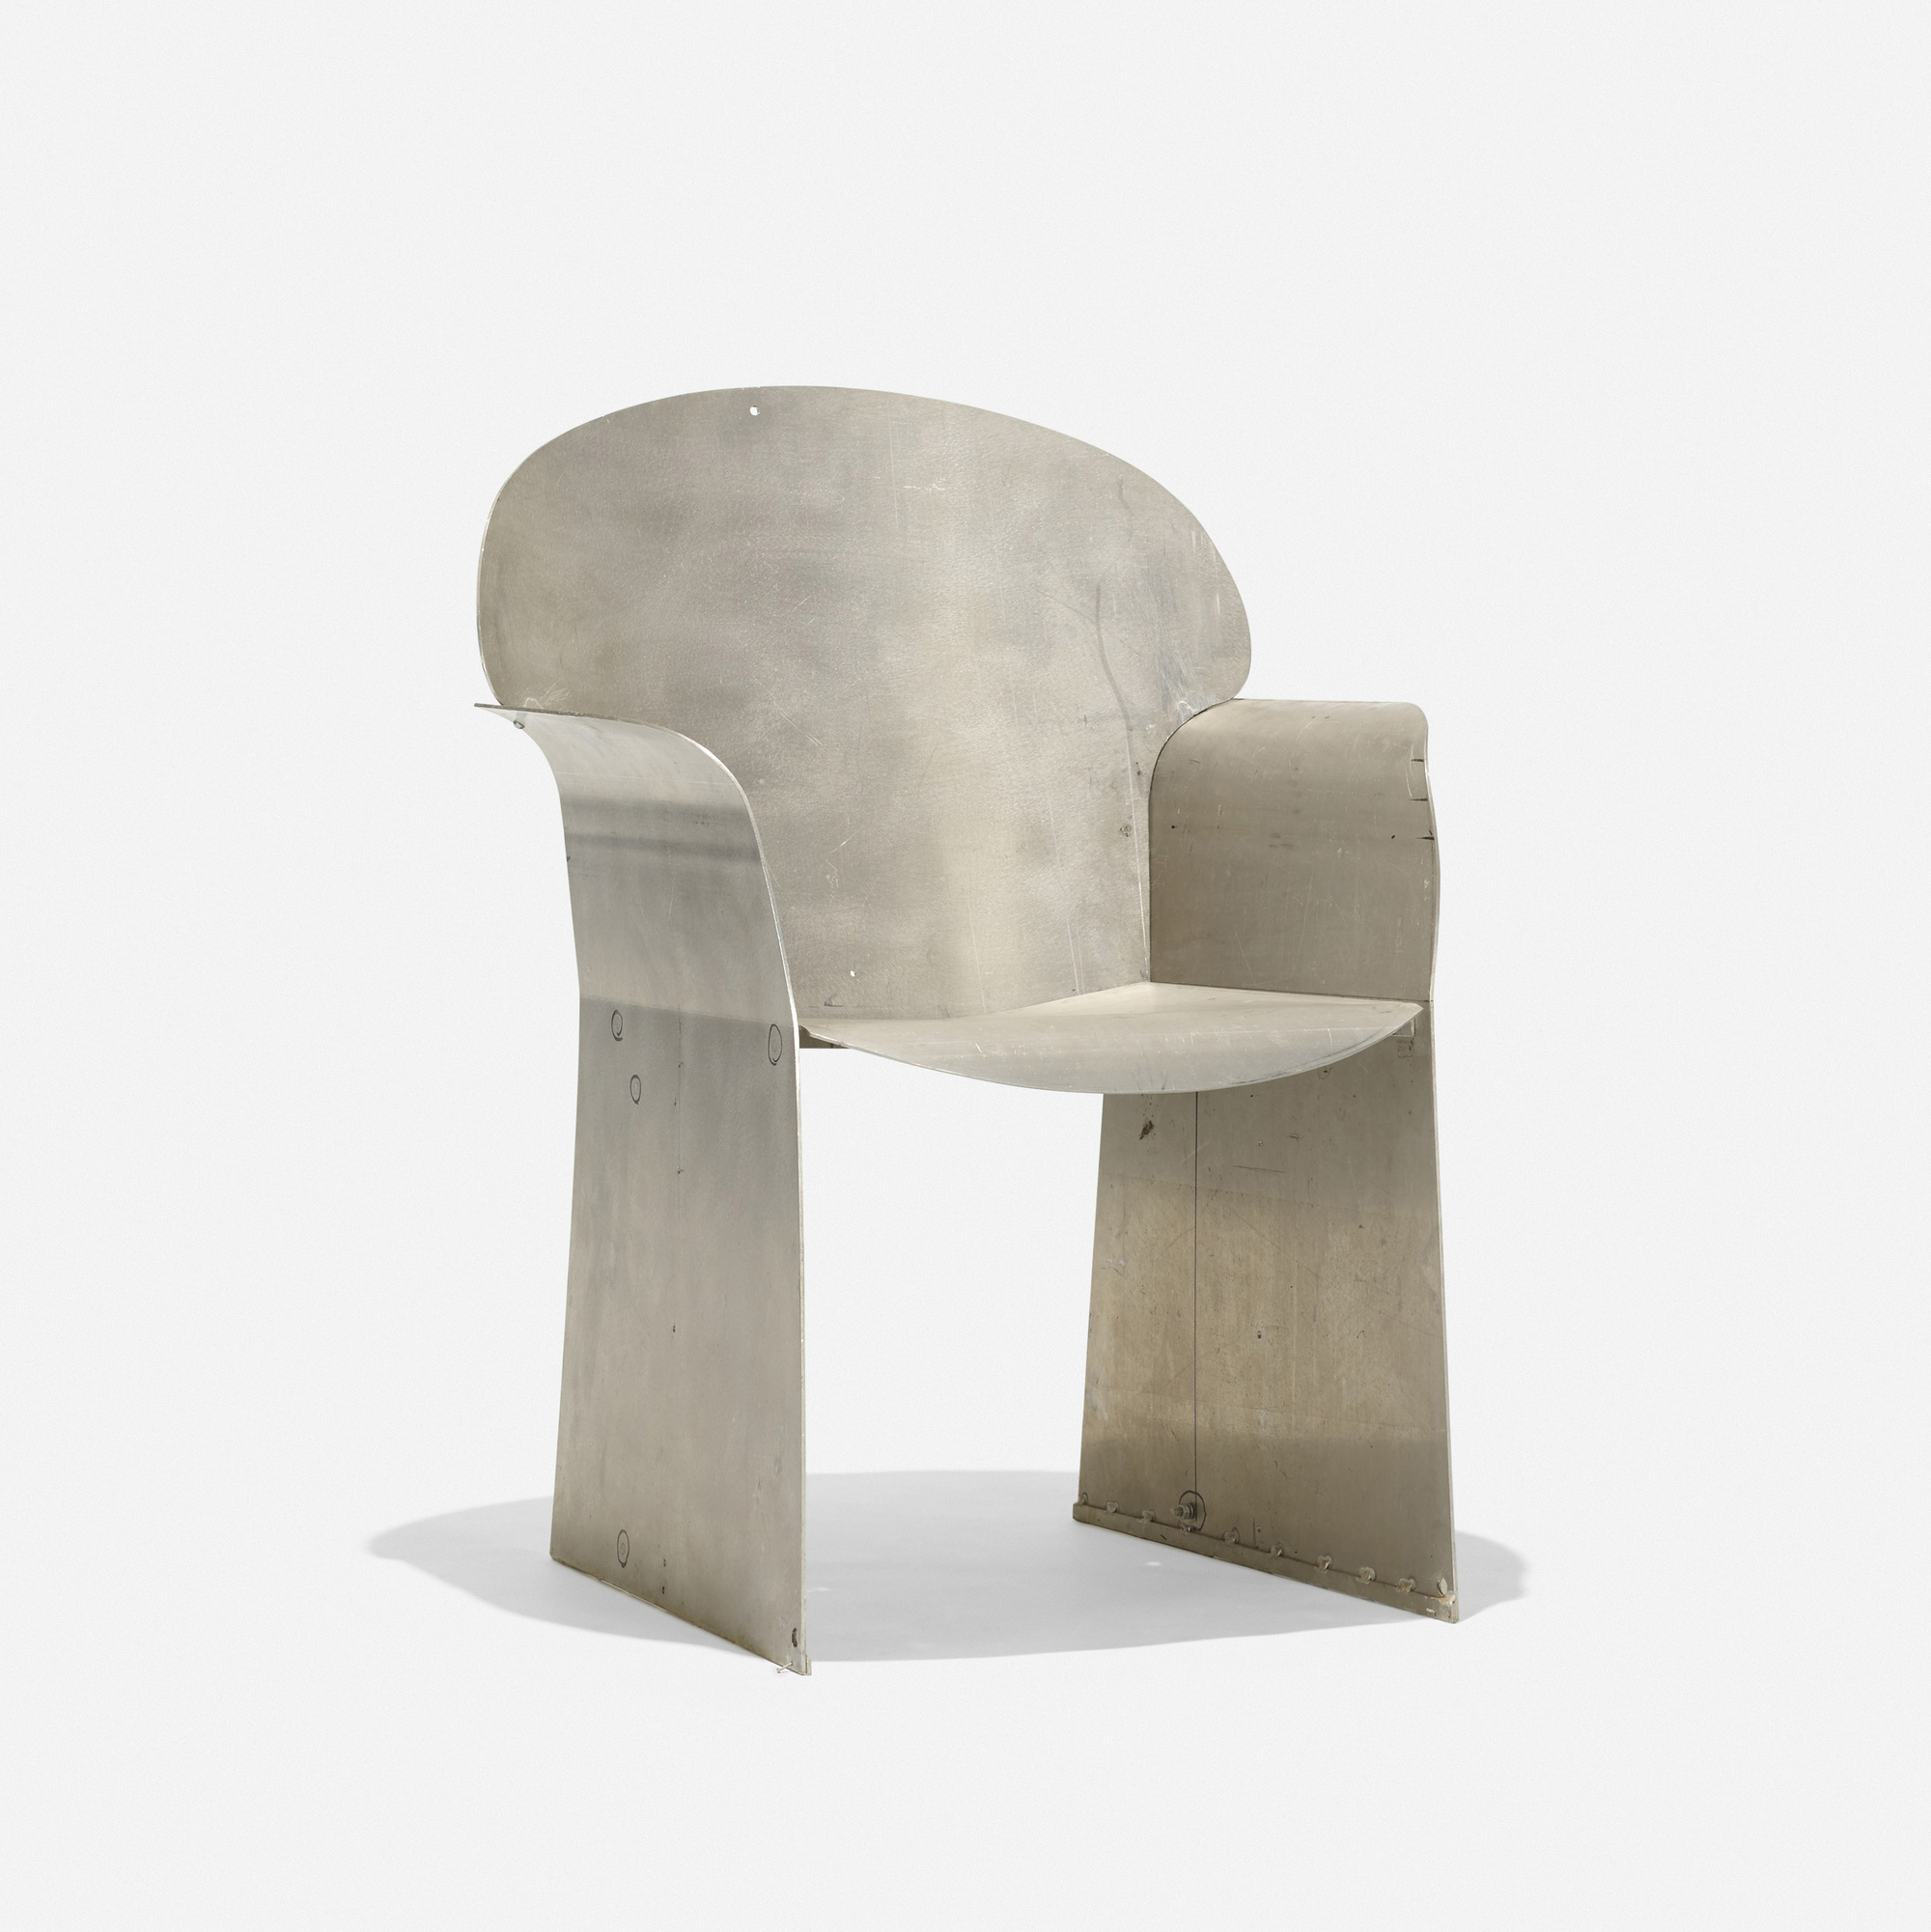 richard schultz  prototype topiary dining chair  the design  -   richard schultz  prototype topiary dining chair ( of )